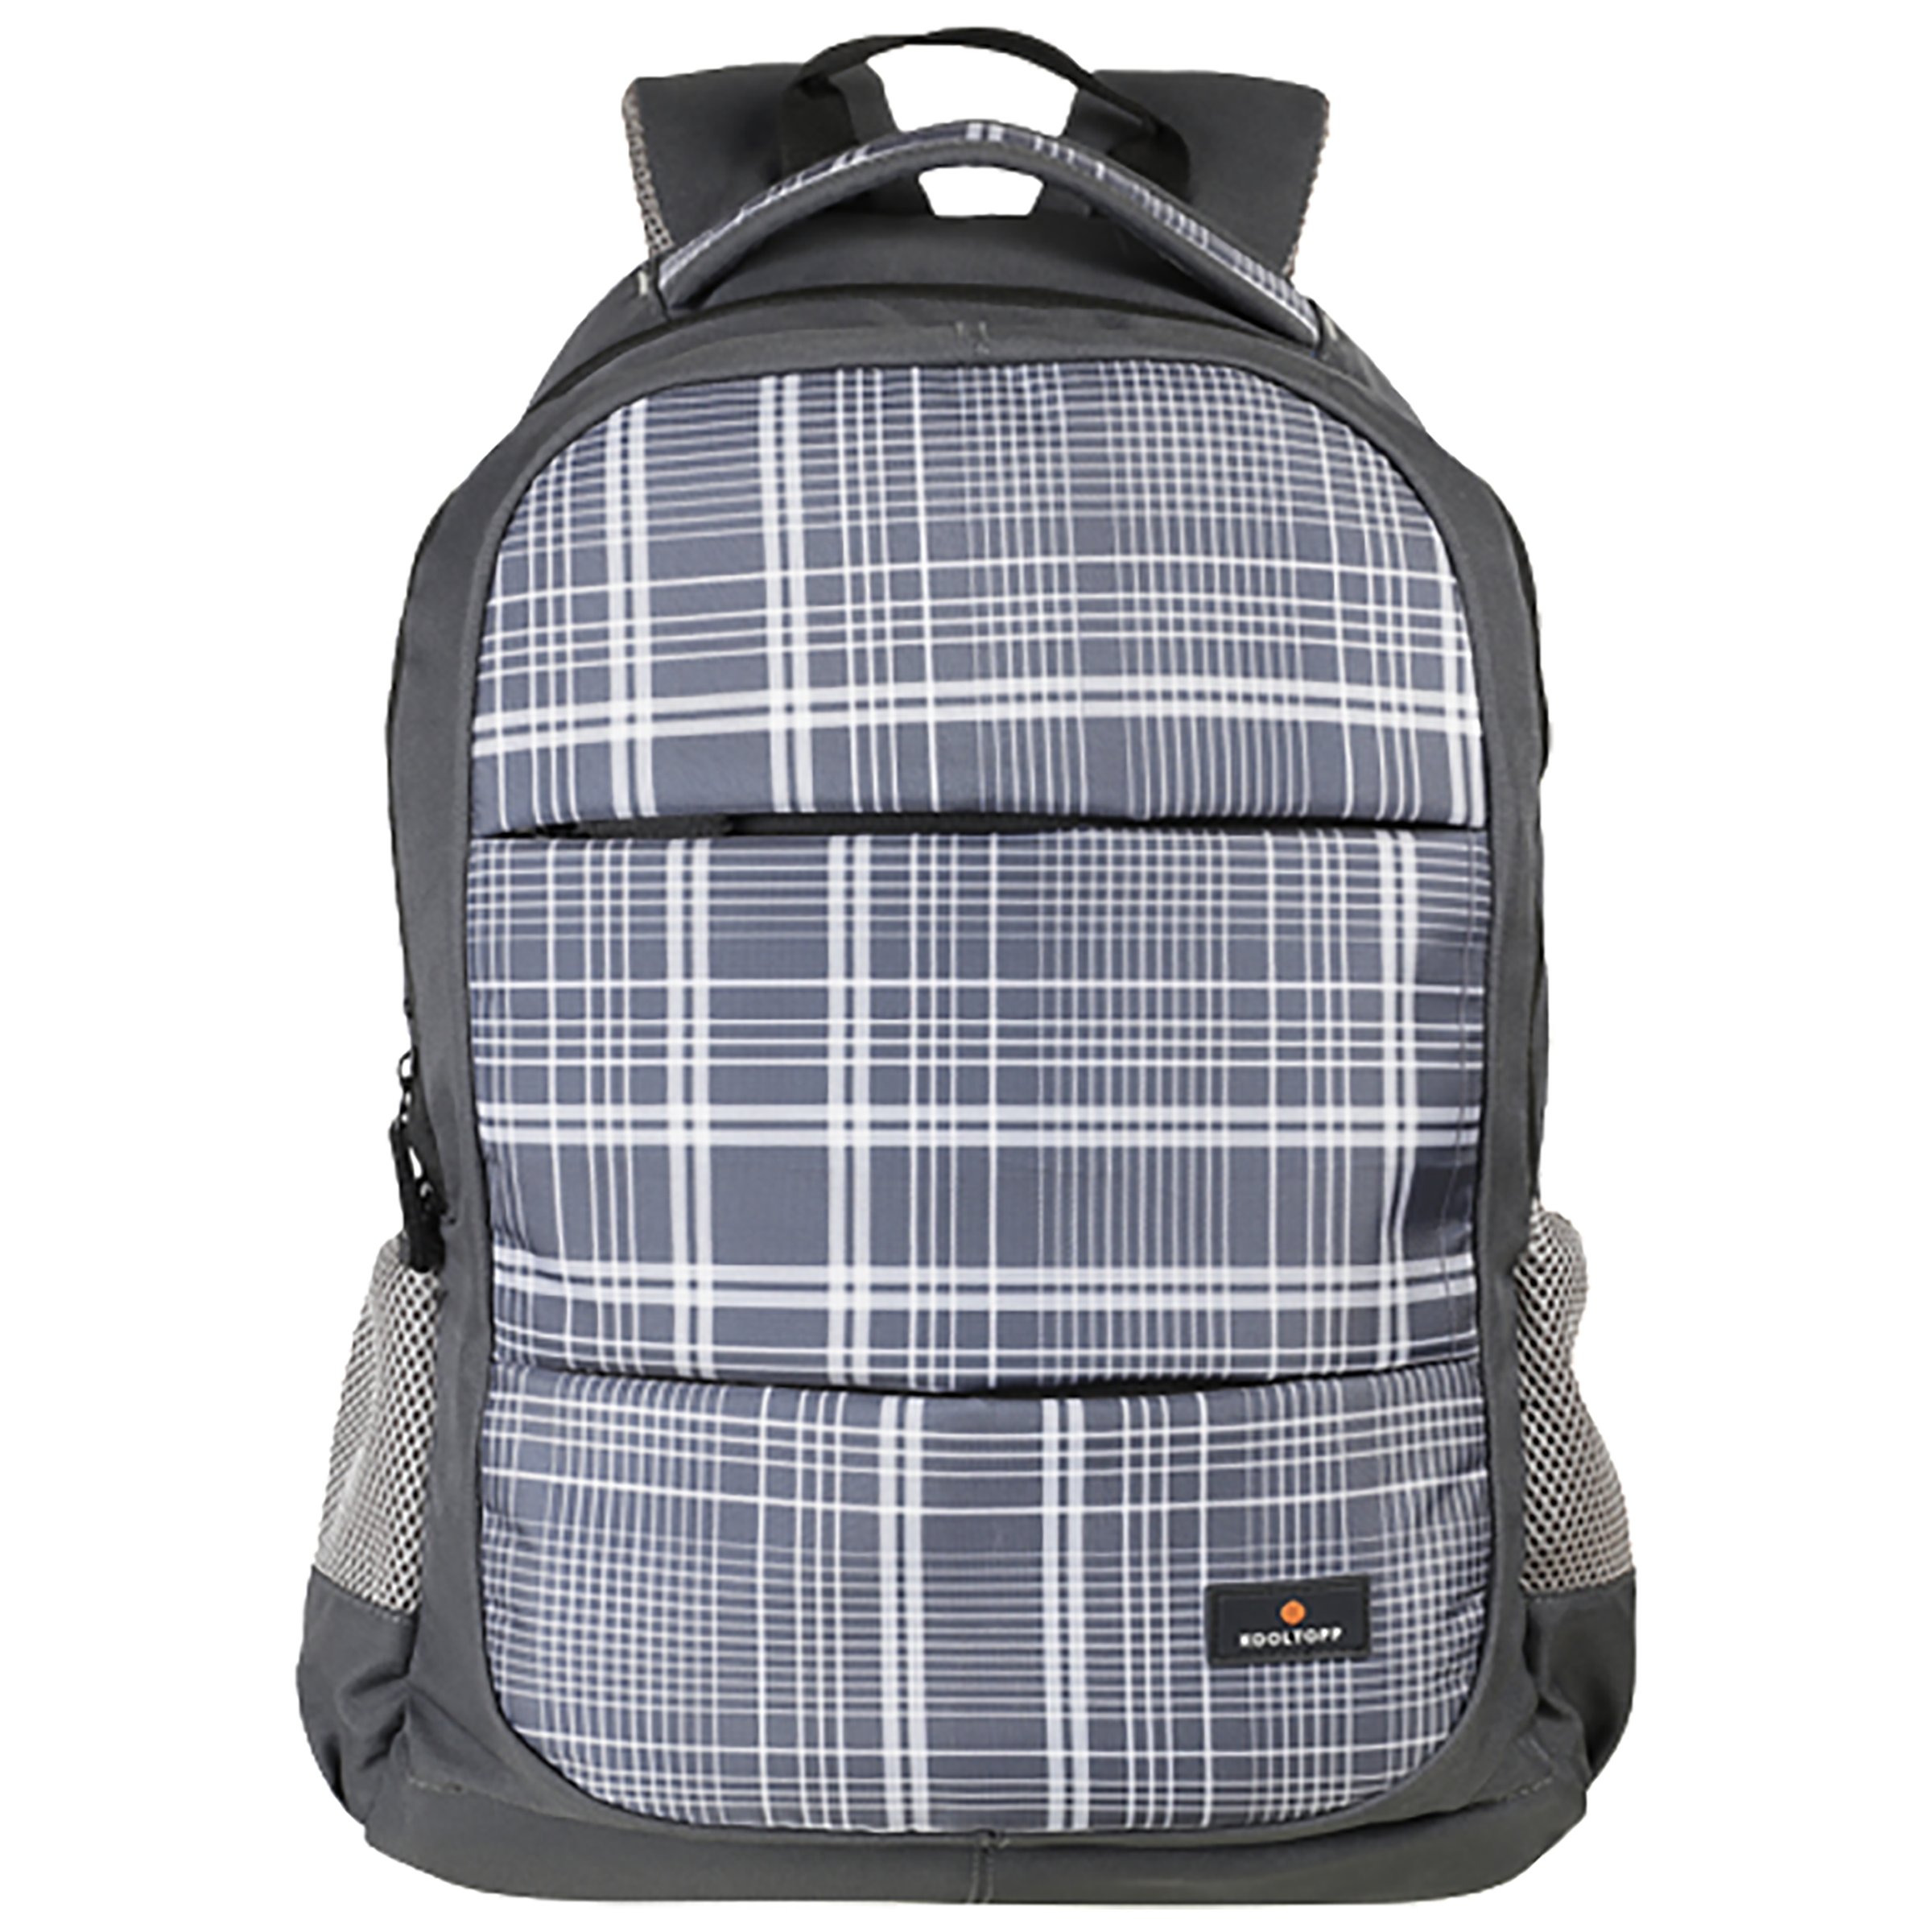 Kooltopp Checks 25 Litres Polyester Backpack for 15.6 Inch Laptop (Water Resistant, KT434-11, Grey)_1